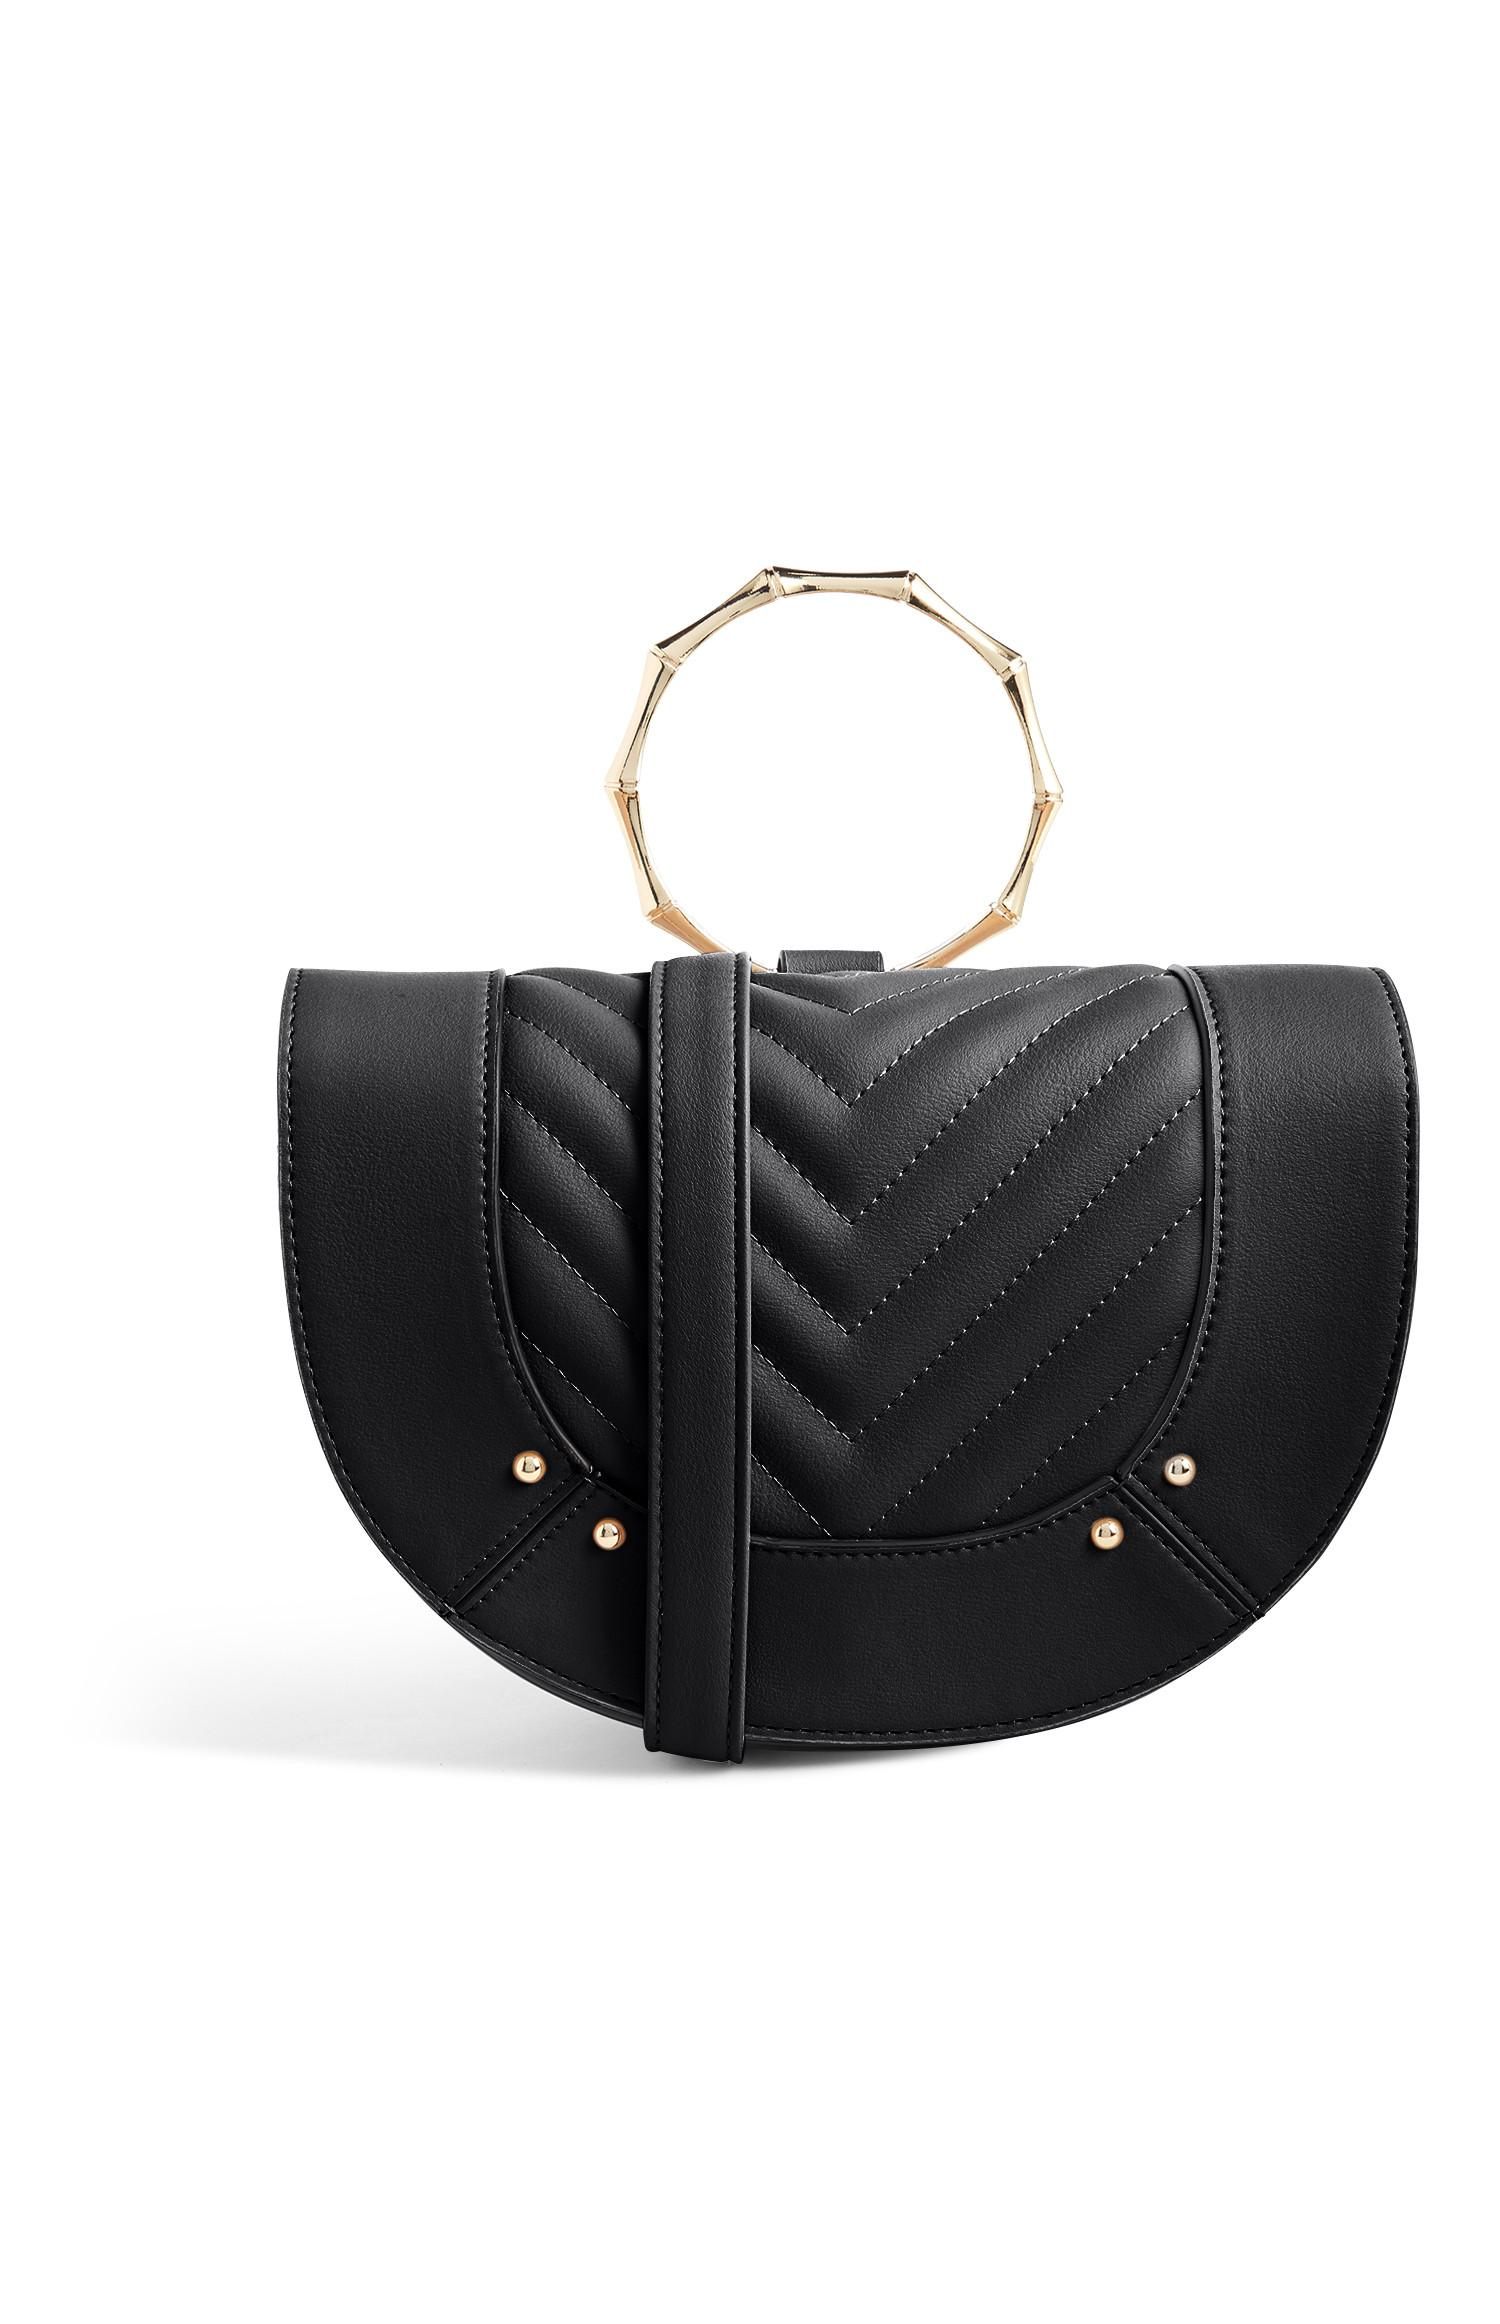 Black Bamboo Handle Handbag